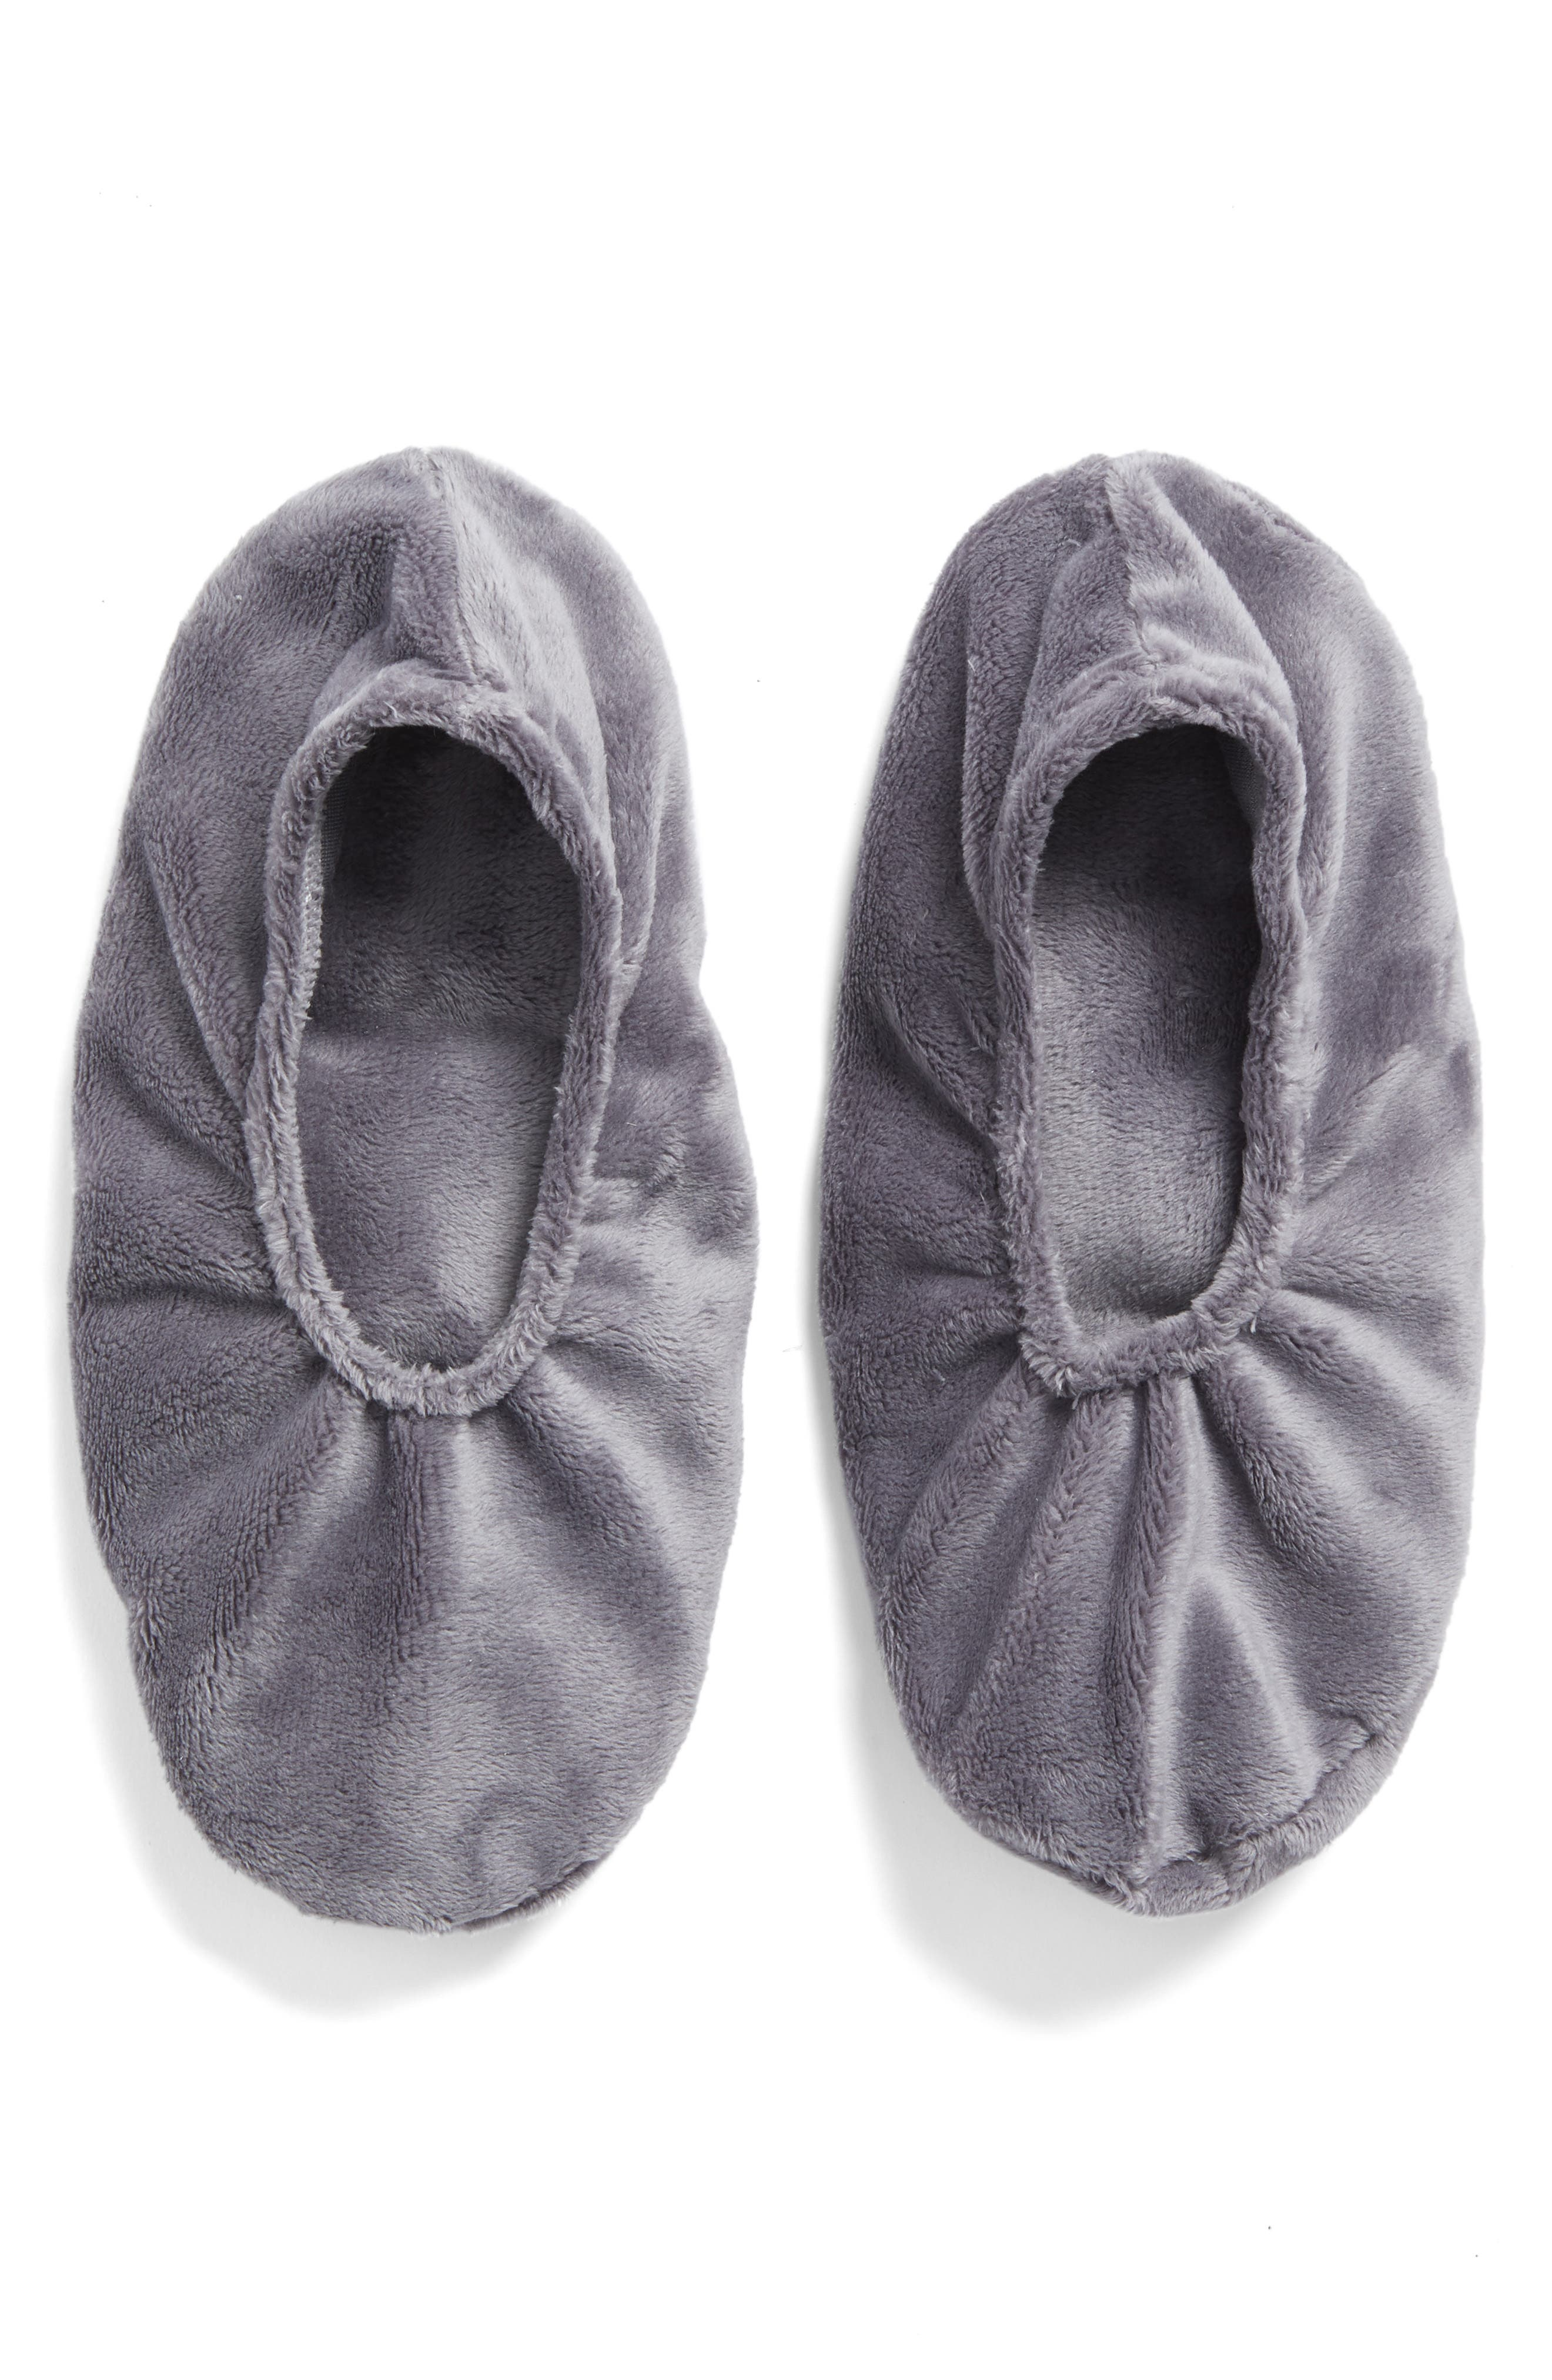 Sonoma Lavender Solid Charcoal Grey Footies (Nordstrom Exclusive) ($38 Value)